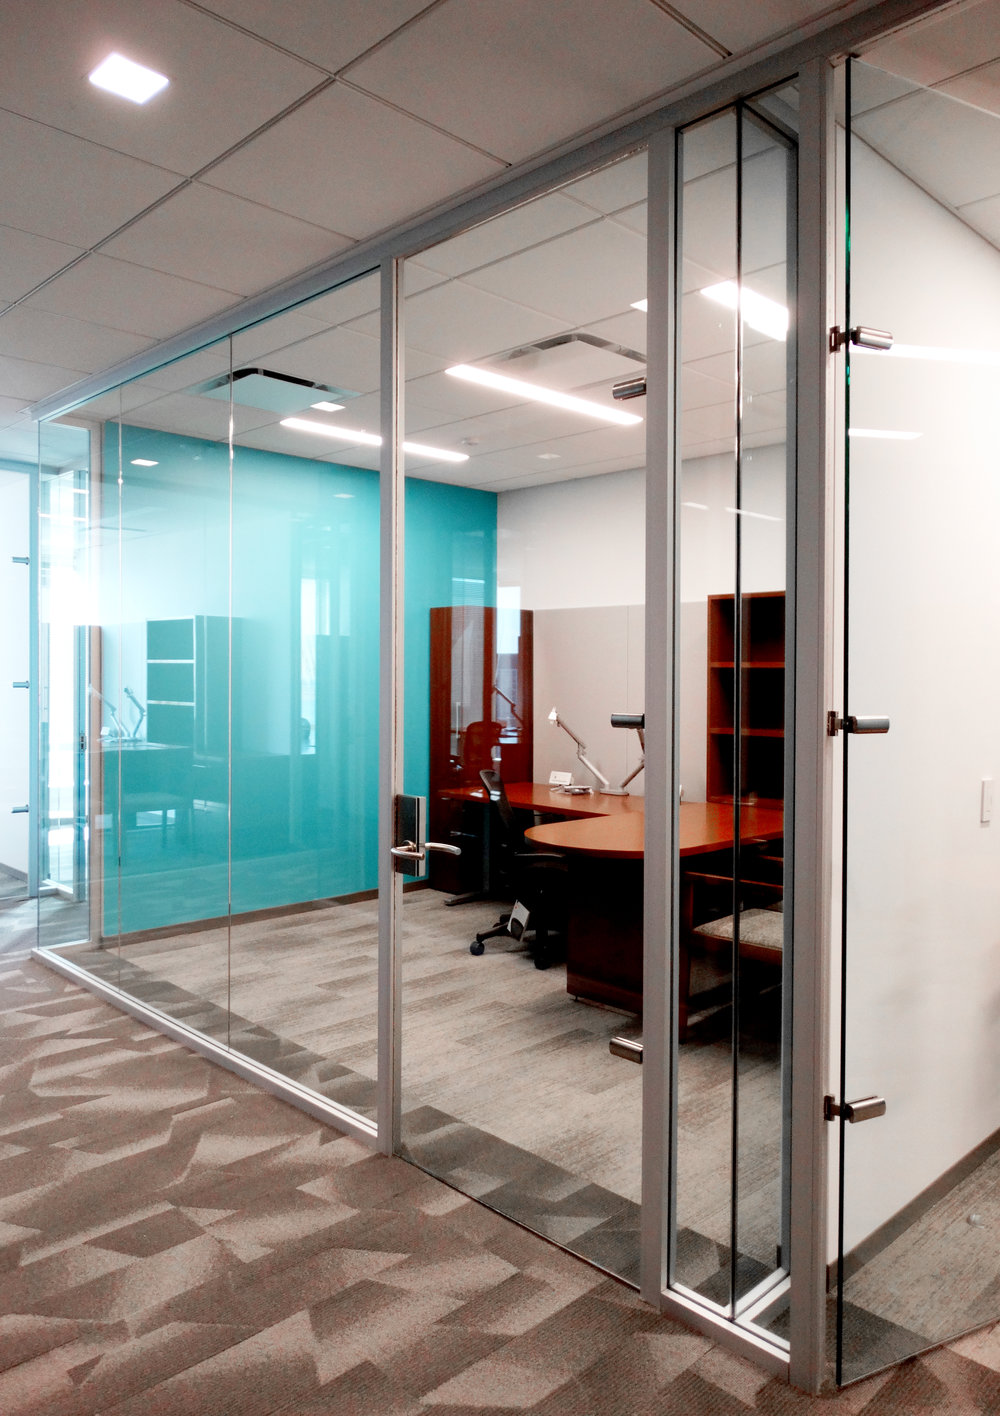 Litespace Glass Doors Aluminum Framed Wall - Spaceworks AI.jpg